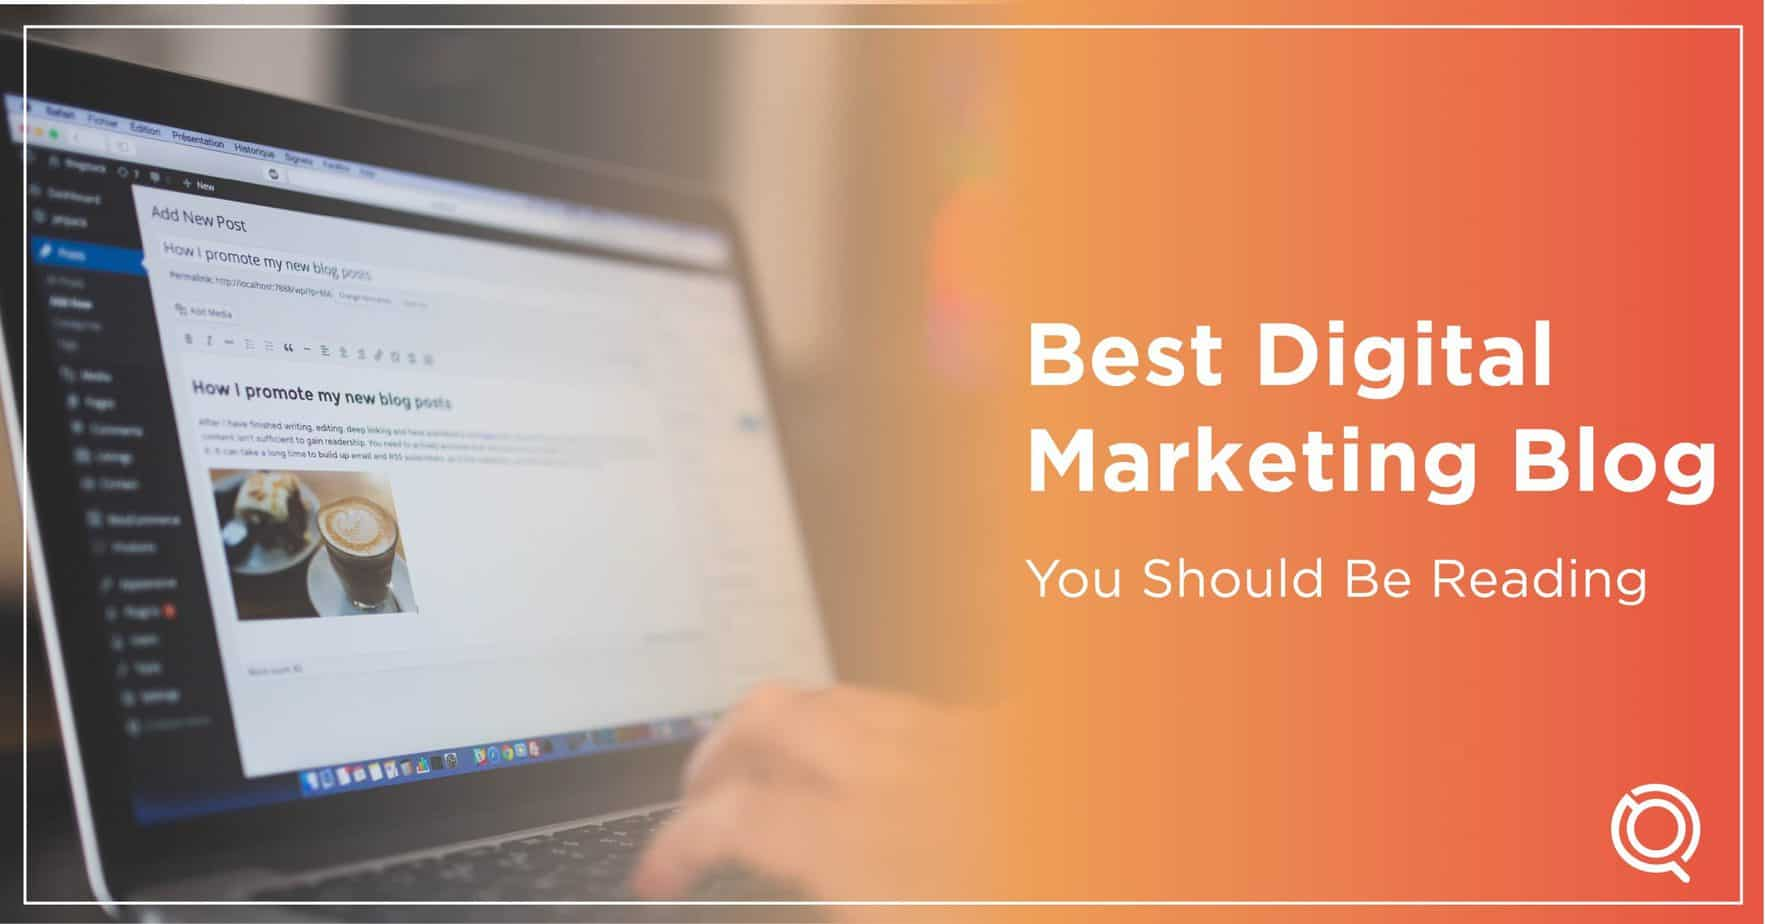 22 Best Digital Marketing Blogs You Need To Read Every Day - Trusted Digital Marketing Agency Malaysia One Search Pro